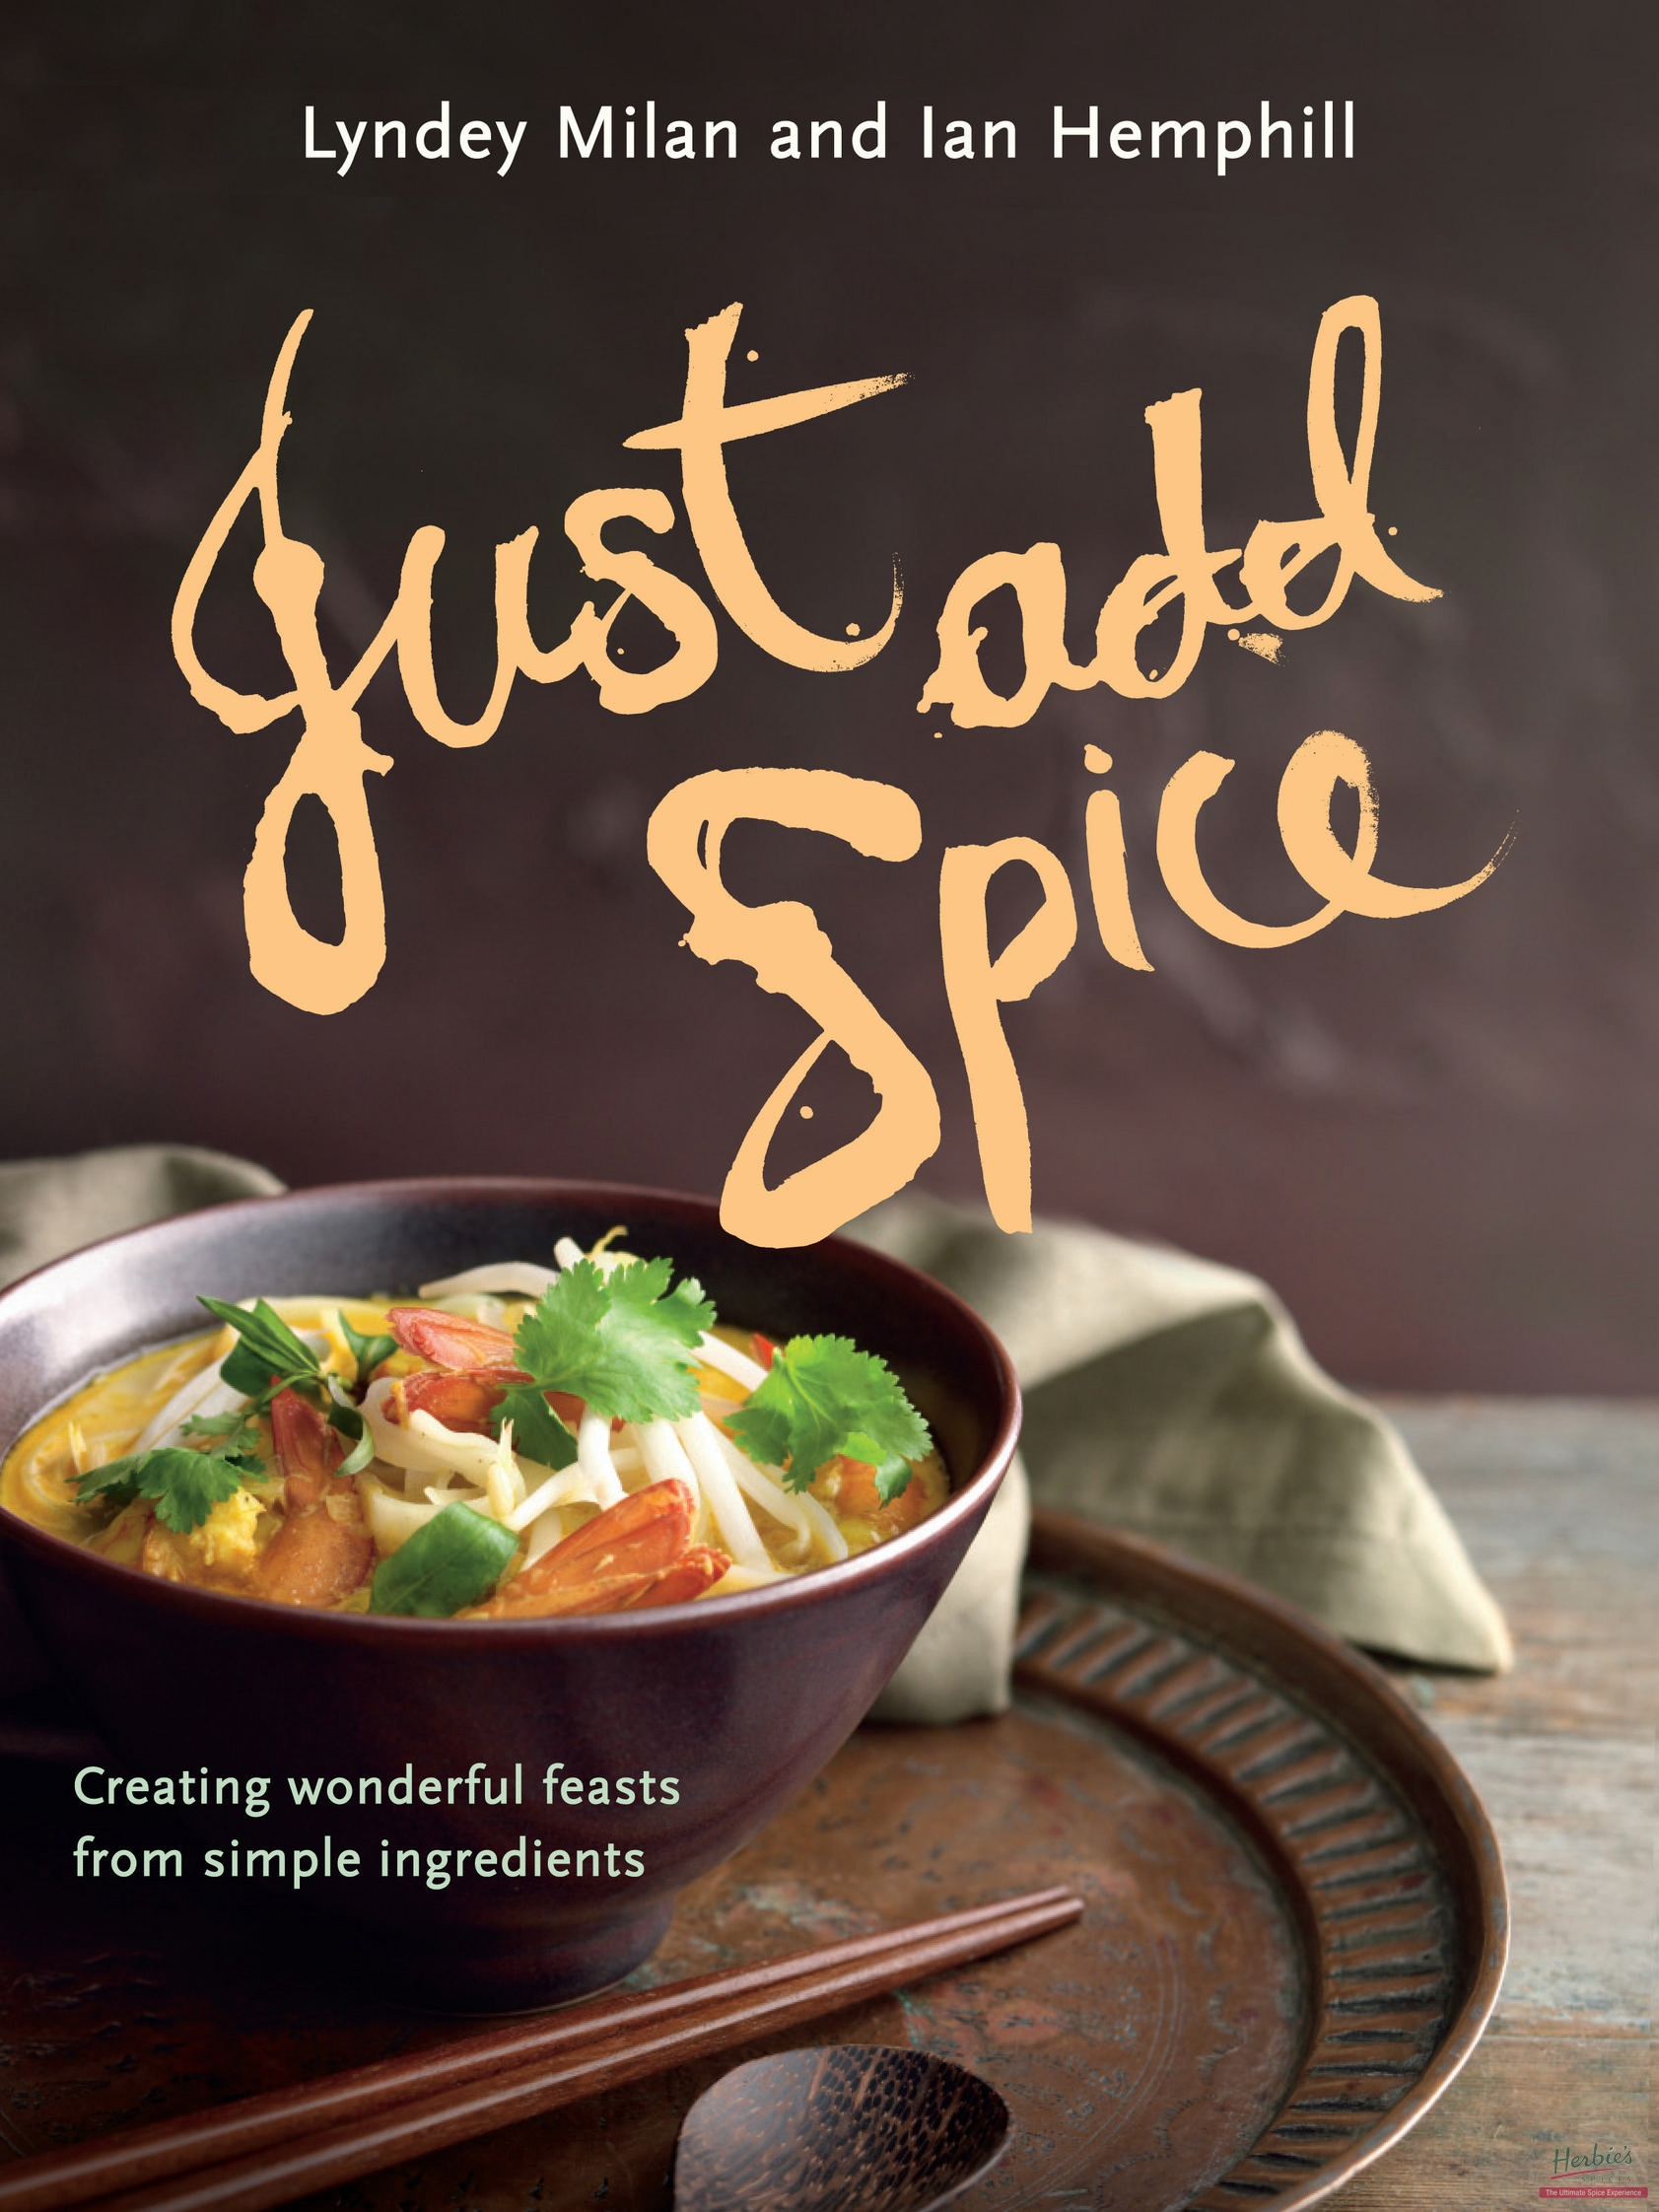 Used Dvds For Sale >> JUST ADD SPICE by Lyndey Milan & Ian Hemphill - Herbie's Spices